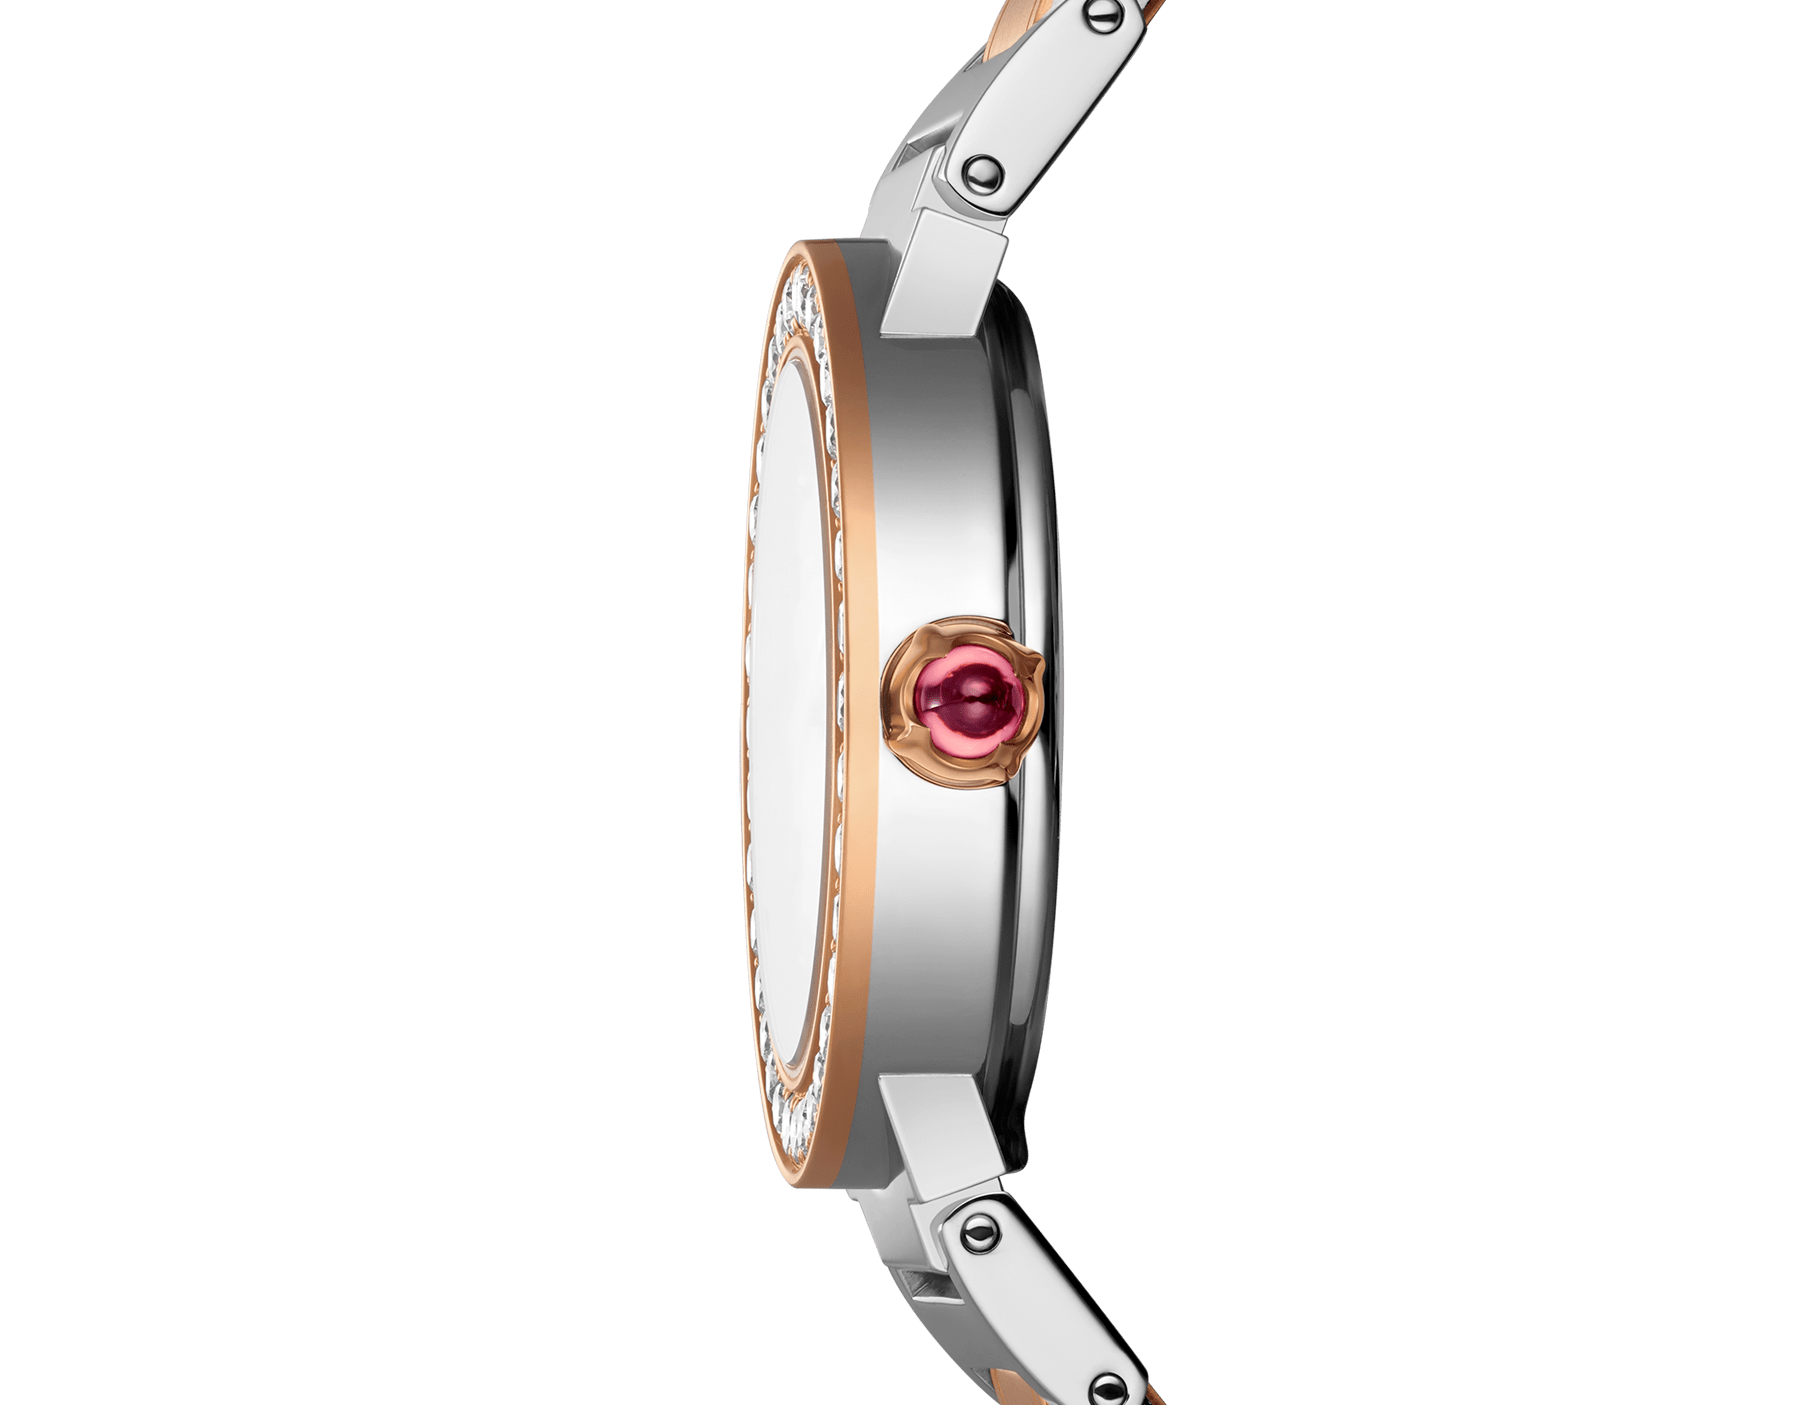 The BVLGARI BVLGARI watch has a stainless steel case, 18 kt rose gold bezel set with diamonds, white mother-of-pearl dial set with diamond indices and a stainless steel and 18 kt rose gold bracelet. 102477 image 3